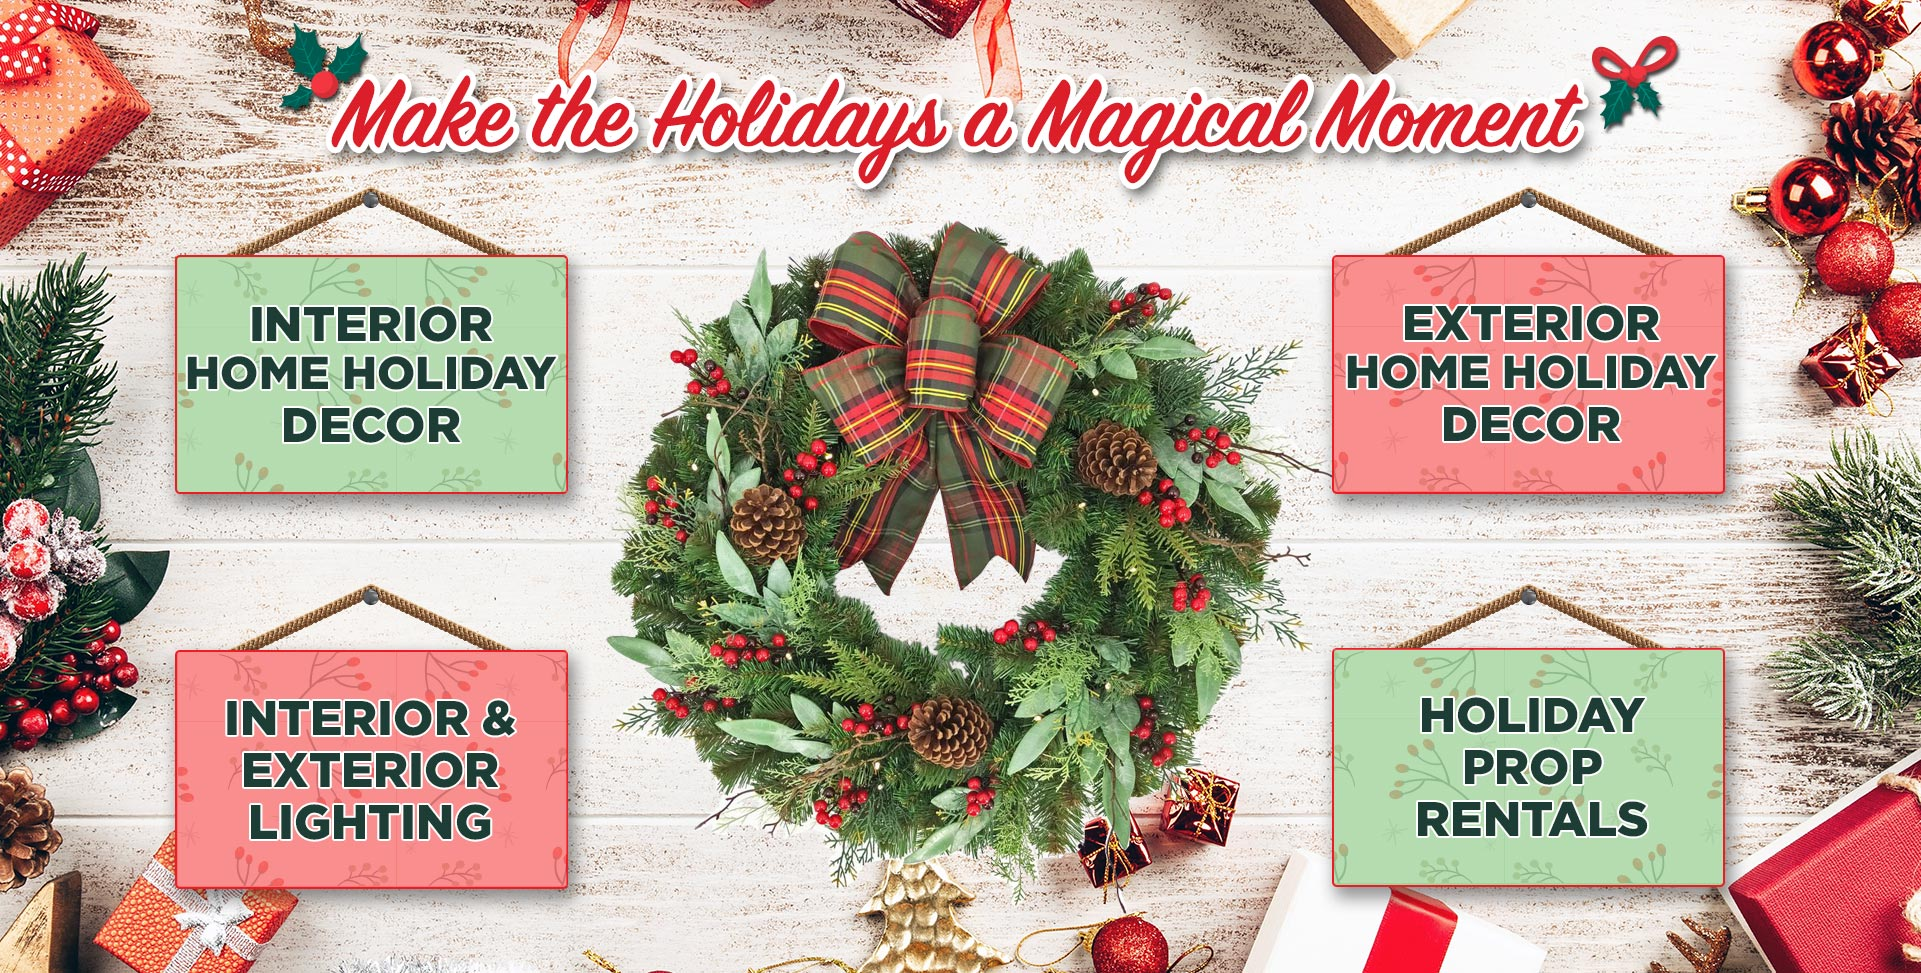 Holiday Decor Services